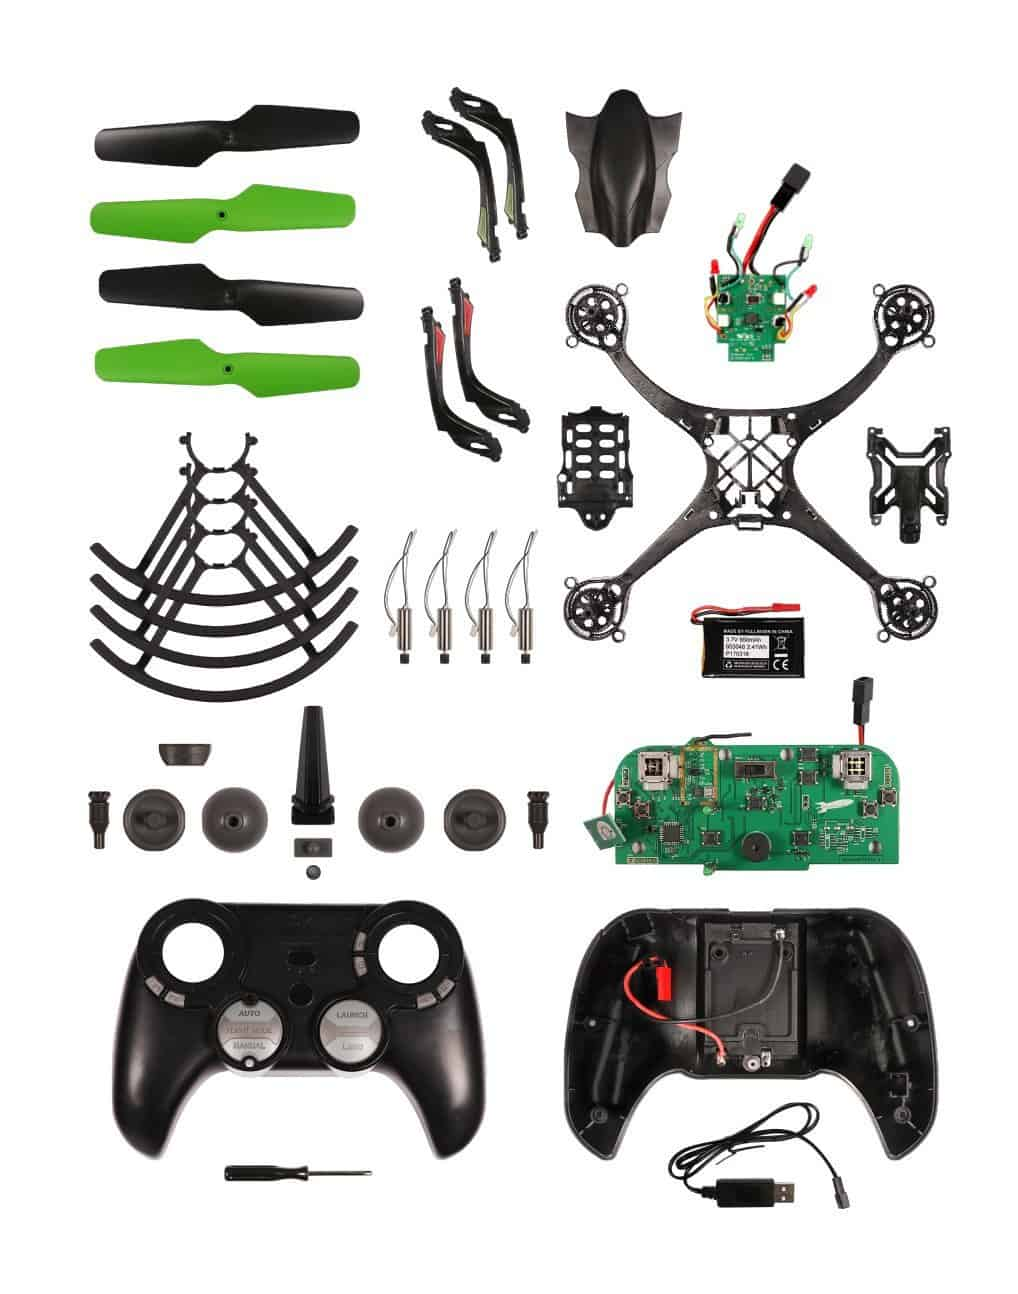 The Best Educational DIY Drone Kits in 2017 | Build & Code Drones